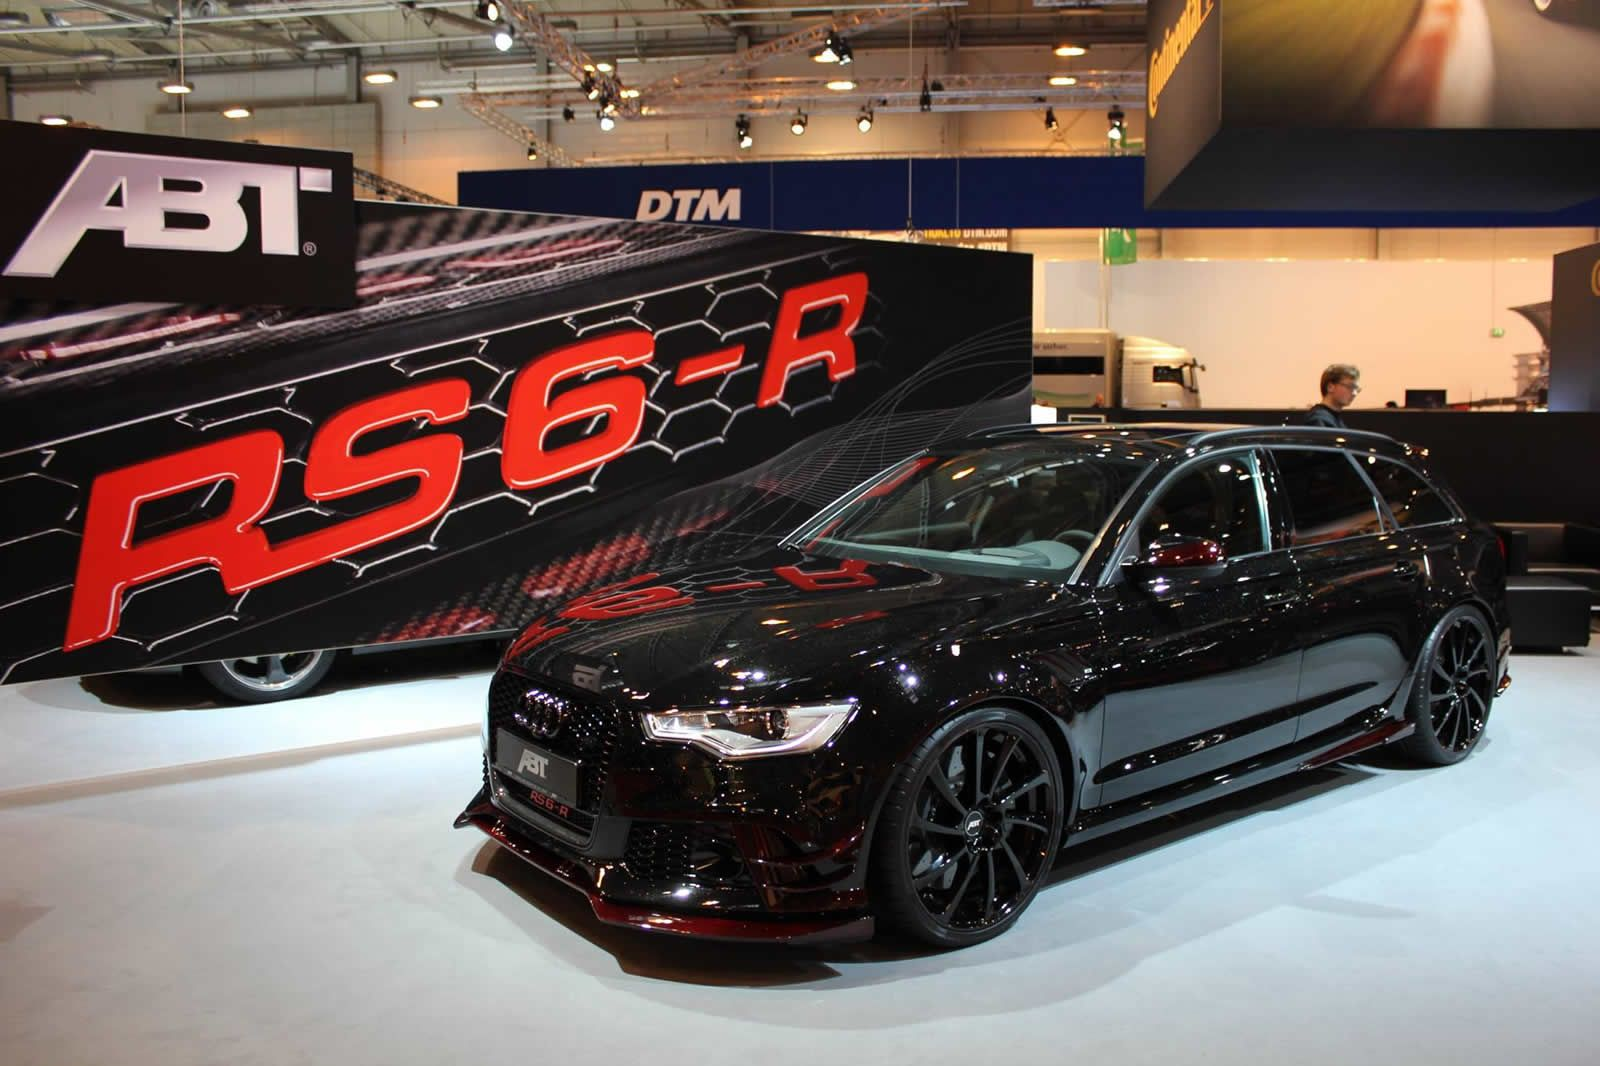 abt rs6 r live images from essen motor show ma ini puternice audi audi rs6 cars. Black Bedroom Furniture Sets. Home Design Ideas